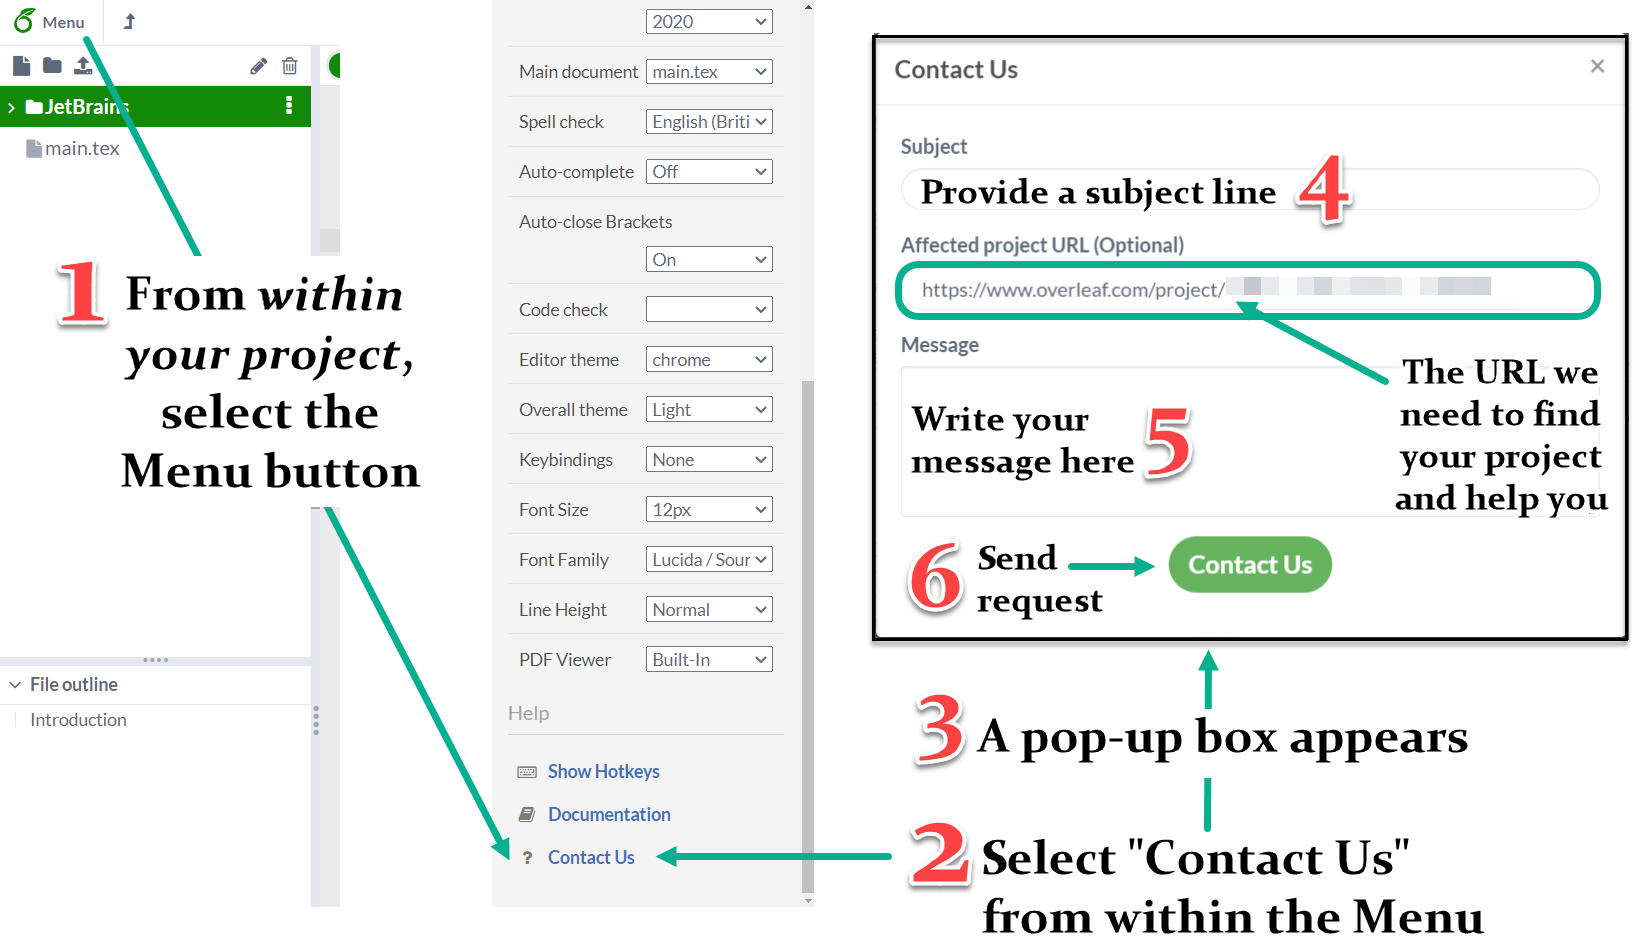 Image showing how to contact Overleaf